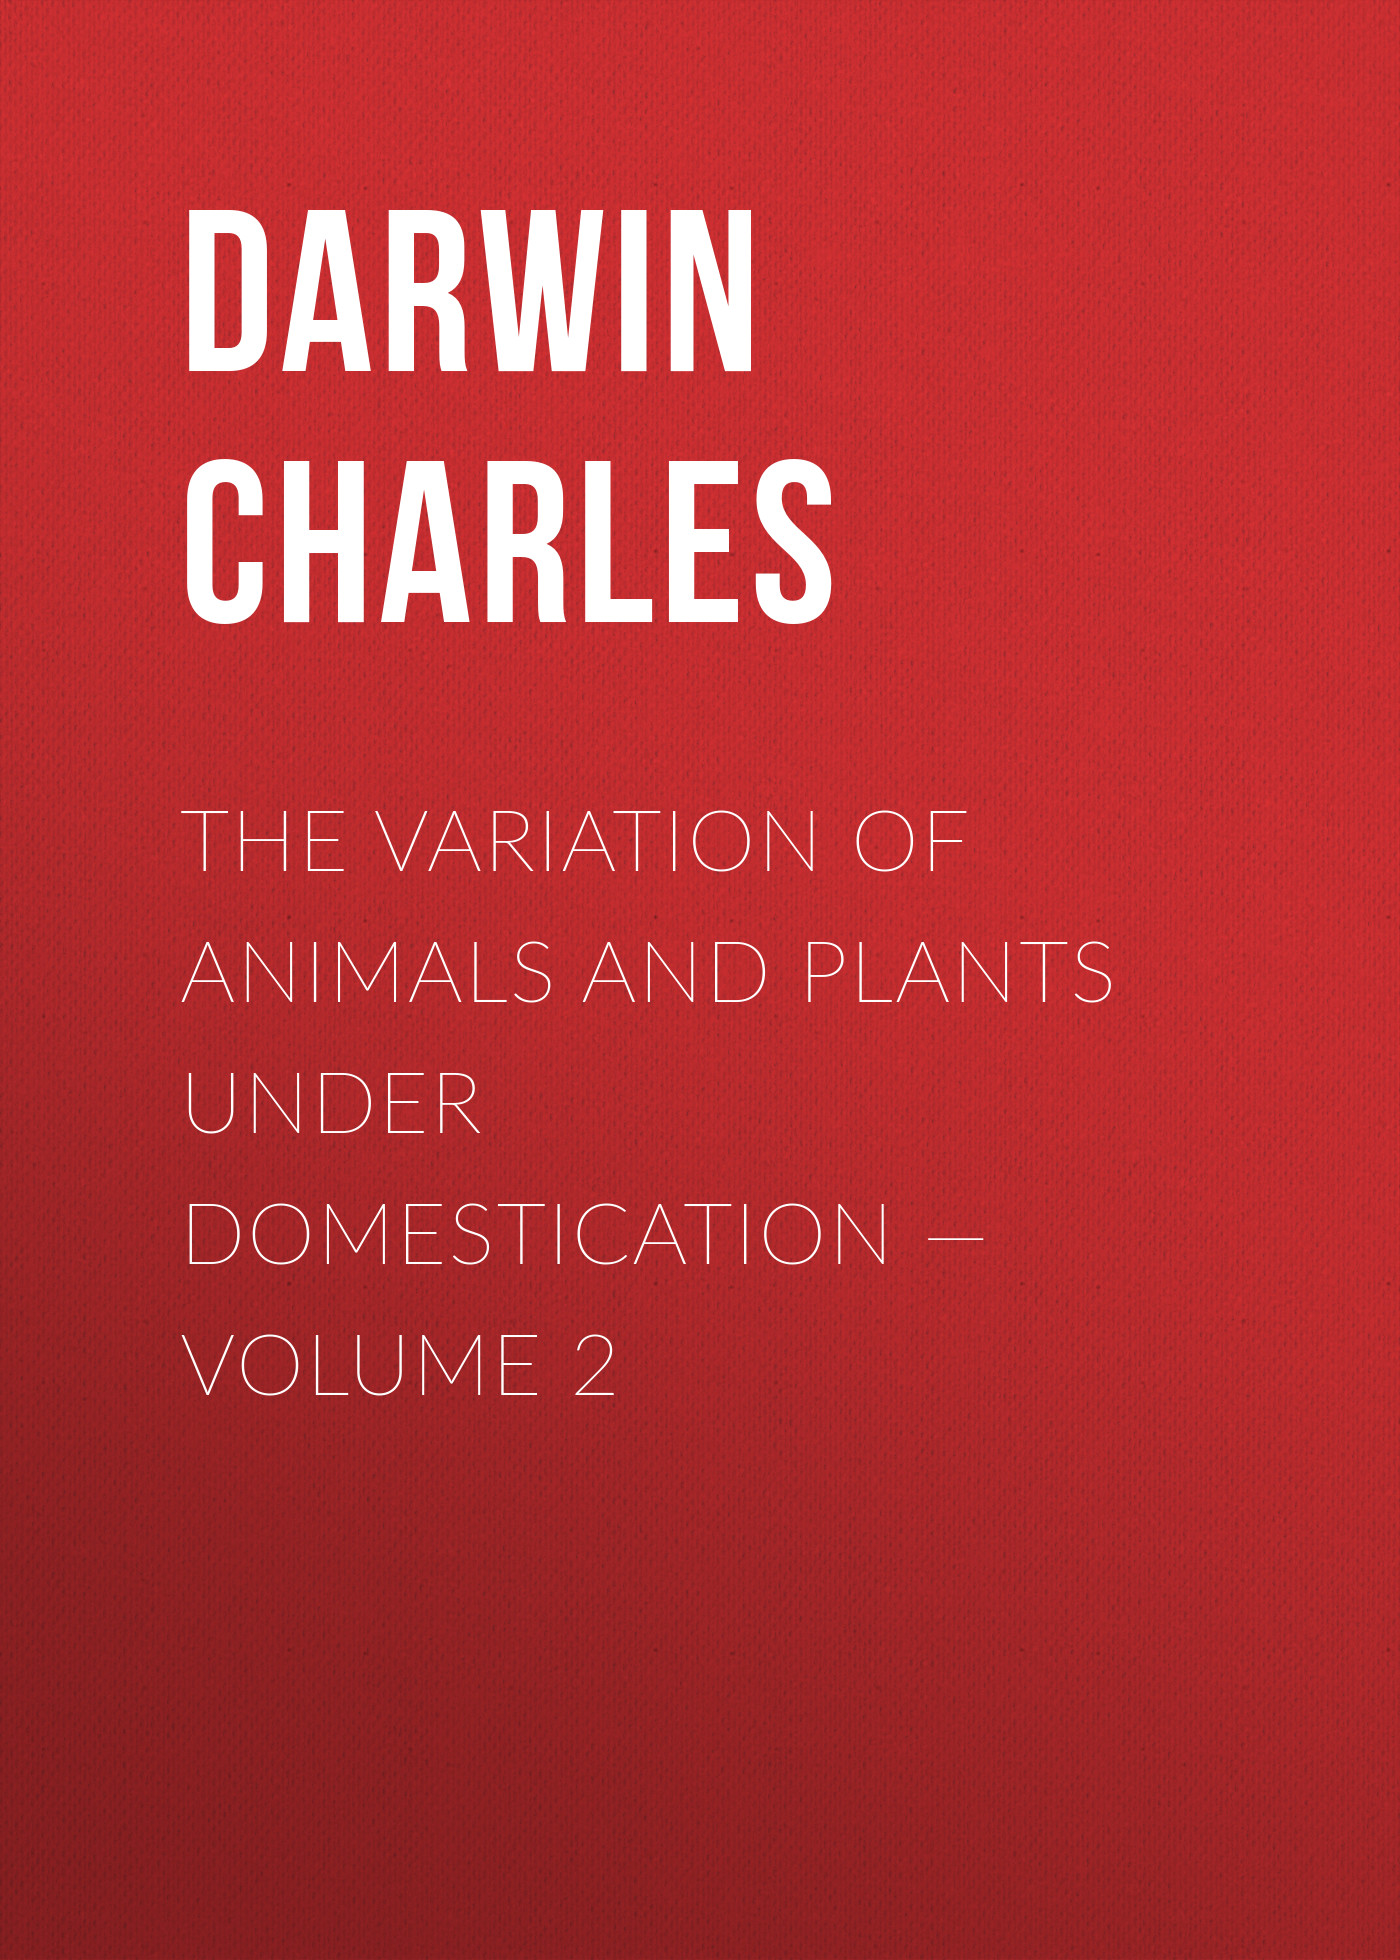 Чарльз Дарвин The Variation of Animals and Plants under Domestication — Volume 2 maria bittner temporality universals and variation